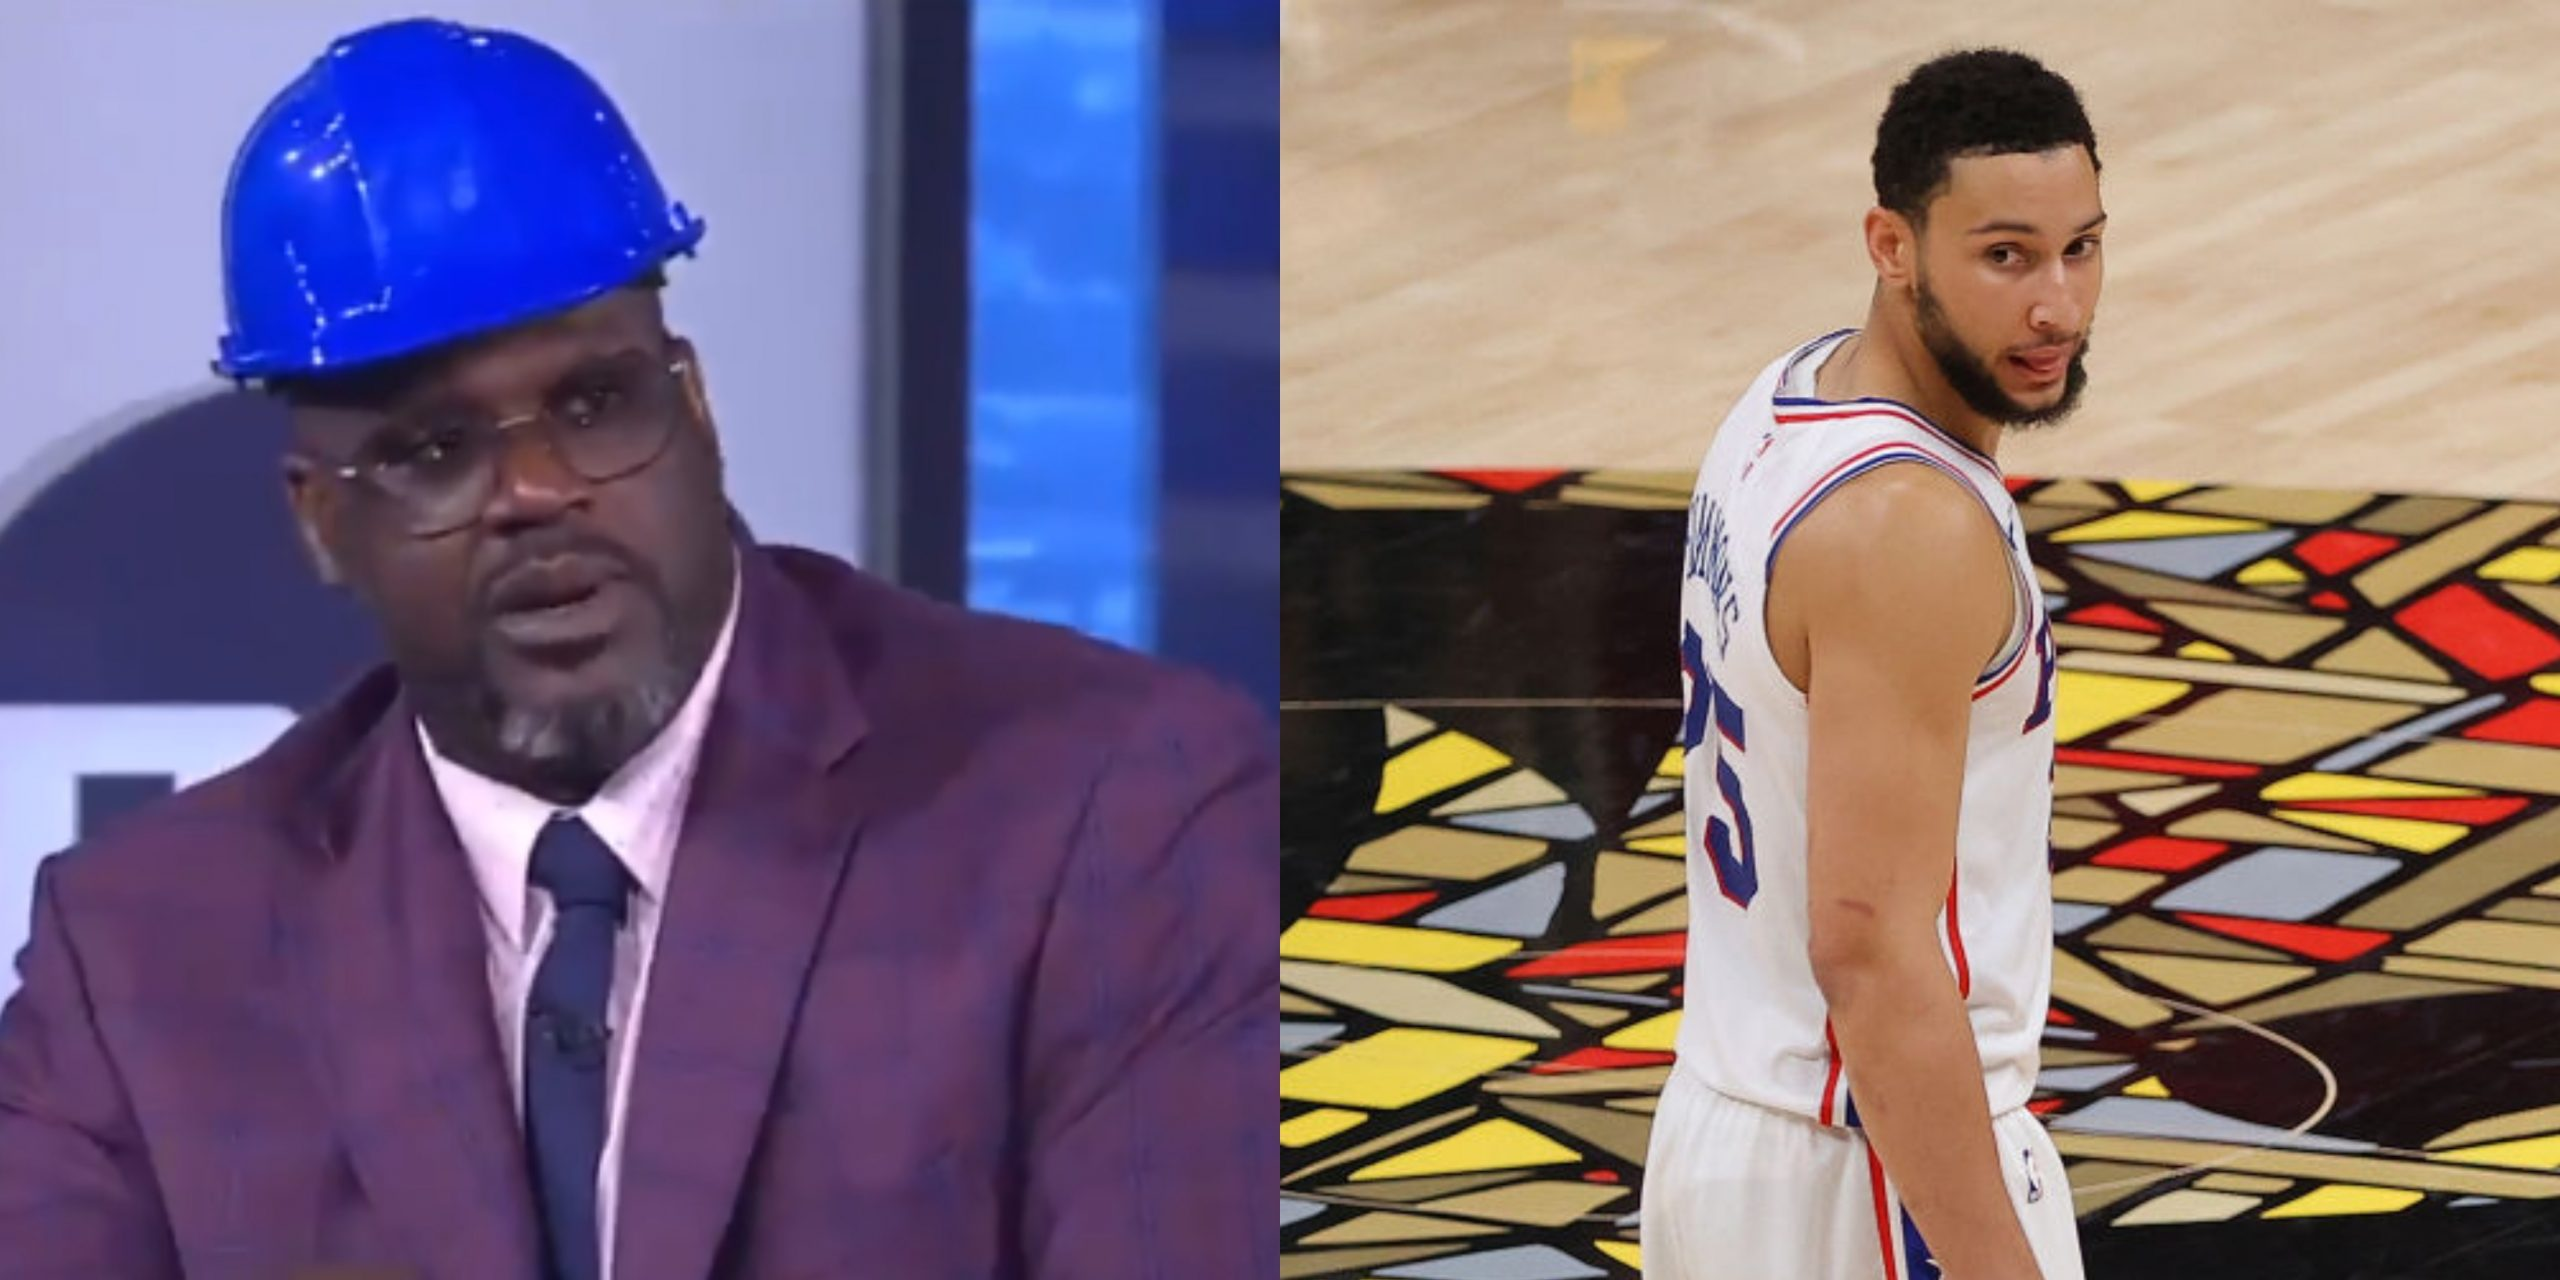 Shaquille O'Neal and Ben Simmons